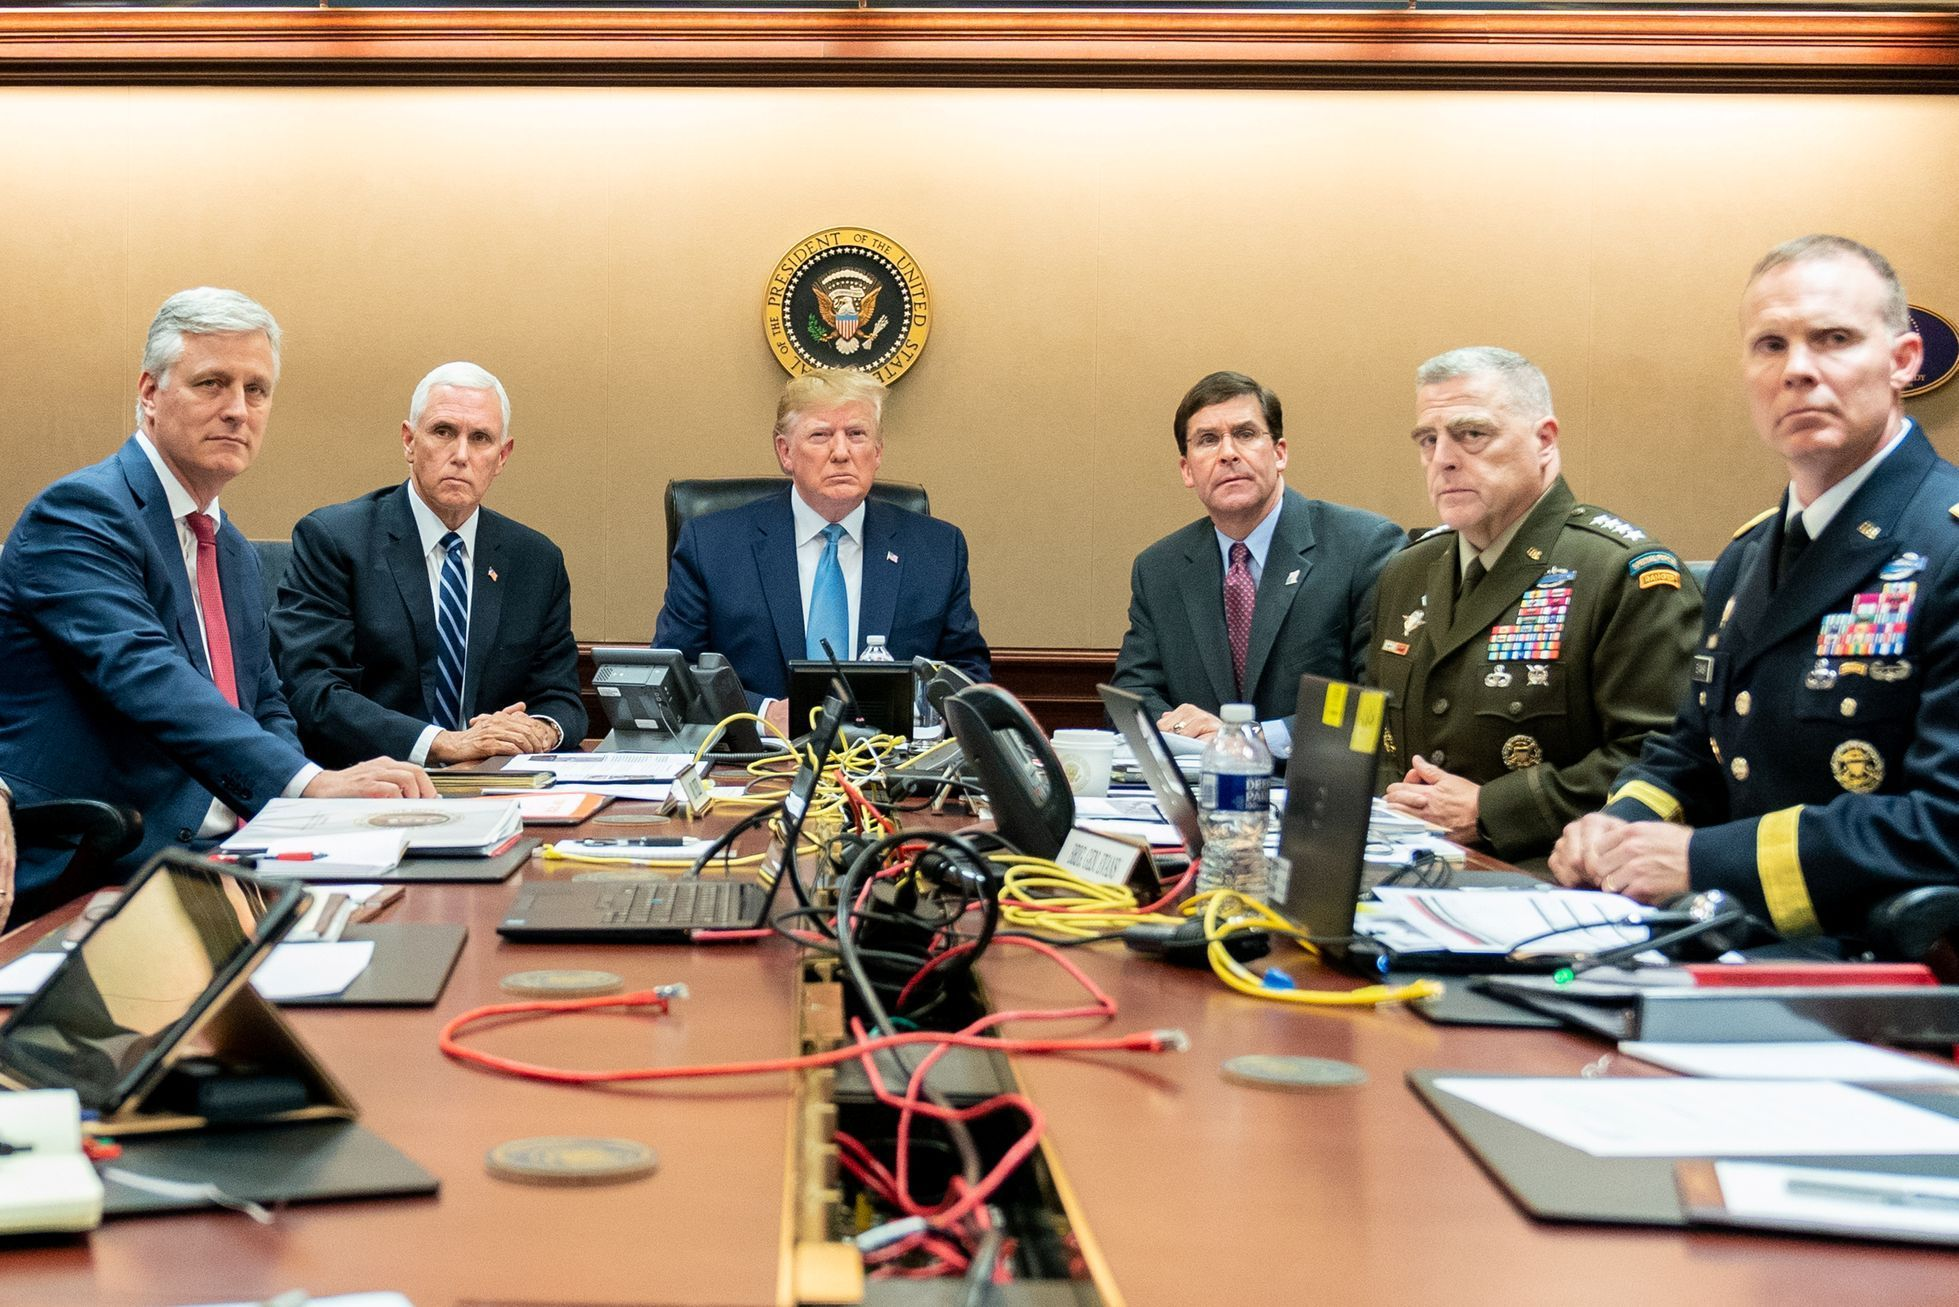 U.S. President Donald Trump watches as U.S. Special Operations forces close in on ISIS leader Abu Bakr al-Baghdadi, in the Situation Room of the White House in Washington